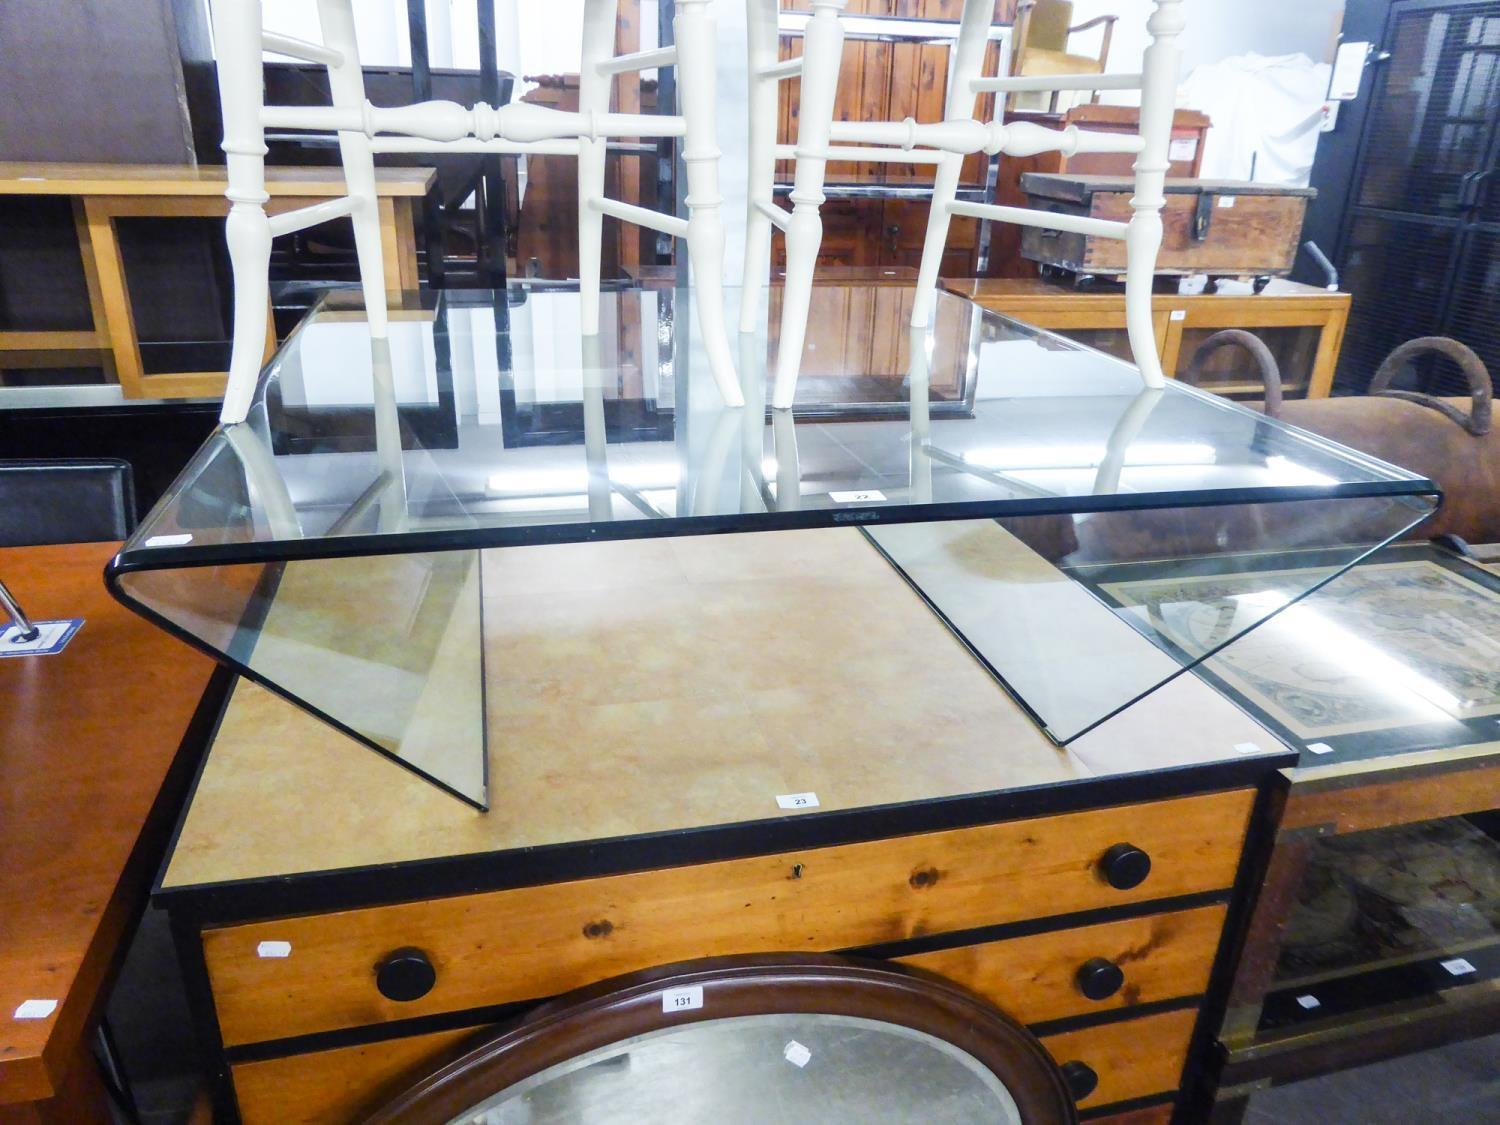 LARGE STYLISH GLASS COFFEE TABLE, 105CH WIDE X 100CM LONG X 34CM HIGH